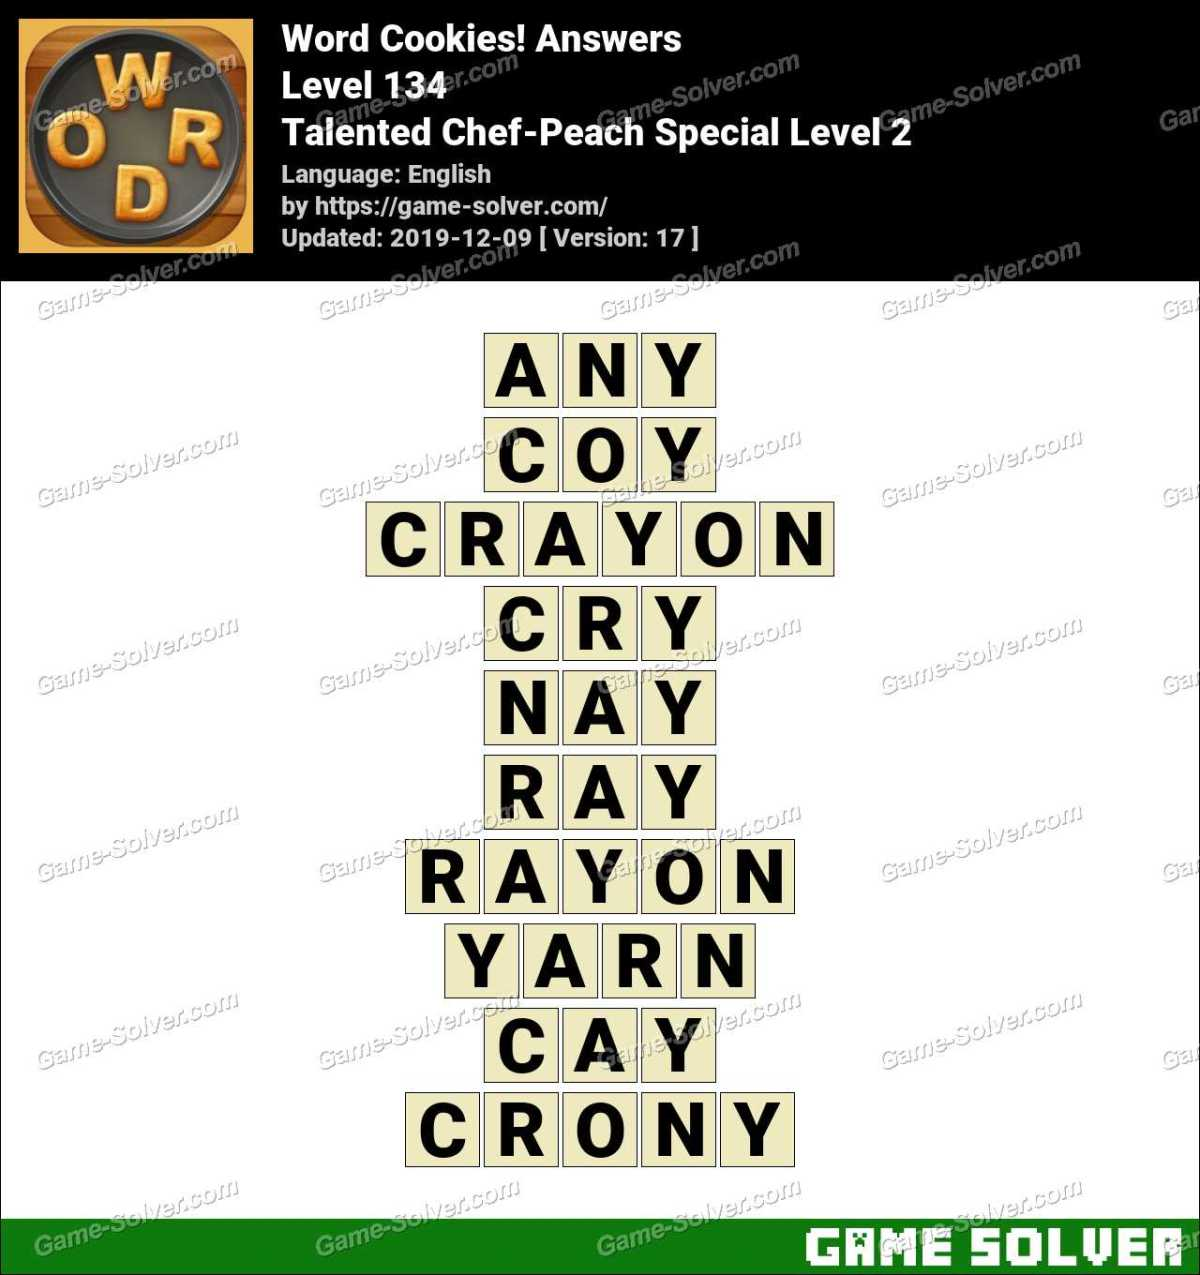 Word Cookies Talented Chef-Peach Special Level 2 Answers